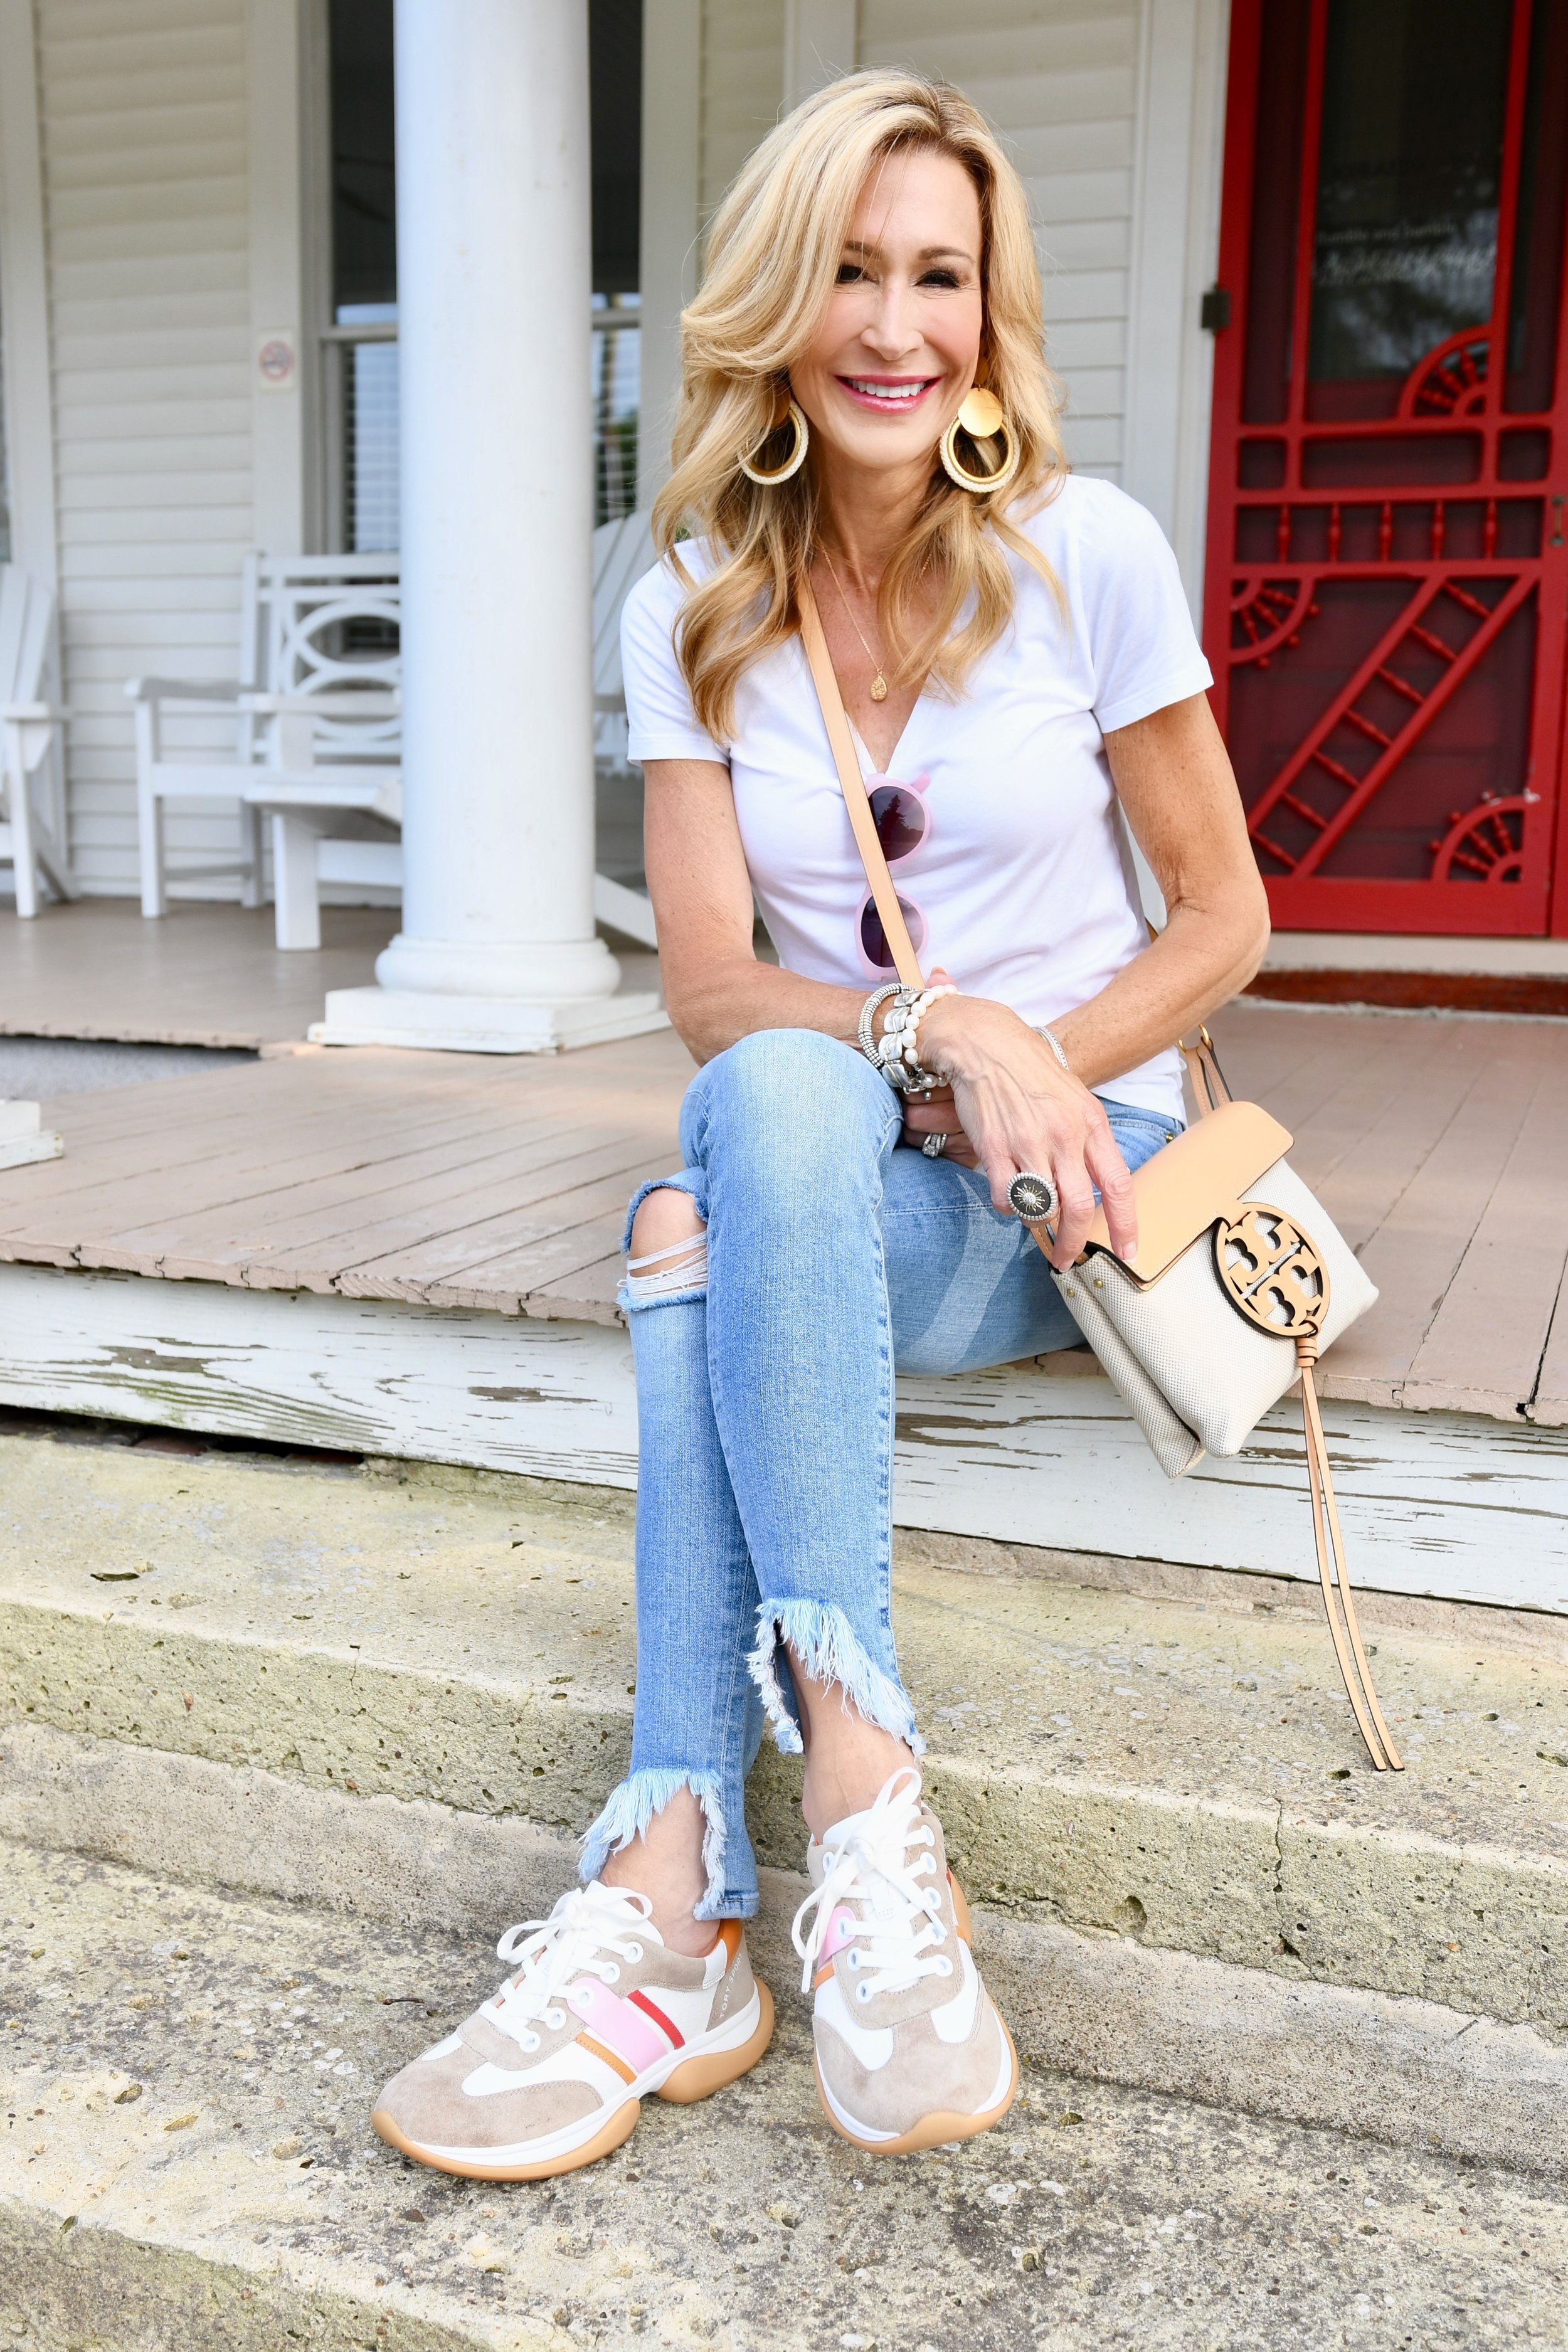 Tory Burch Bubble Sneakers & Miller Crossbody Bag - Crazy Blonde Life